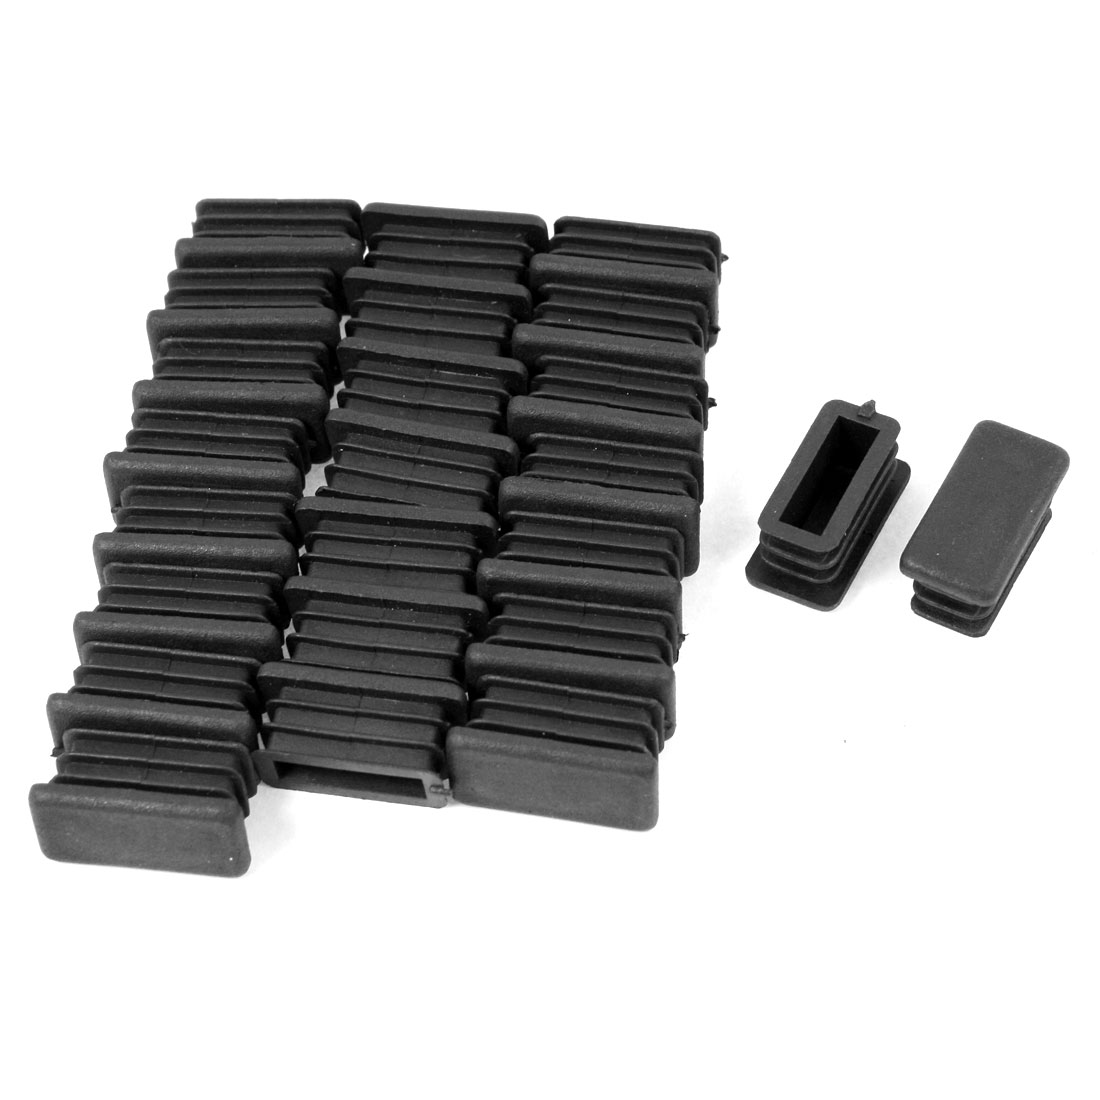 24 Pcs 13mm x 26mm Plastic Ribbed Blanking End Caps Rectangle Tube Pipe Insert